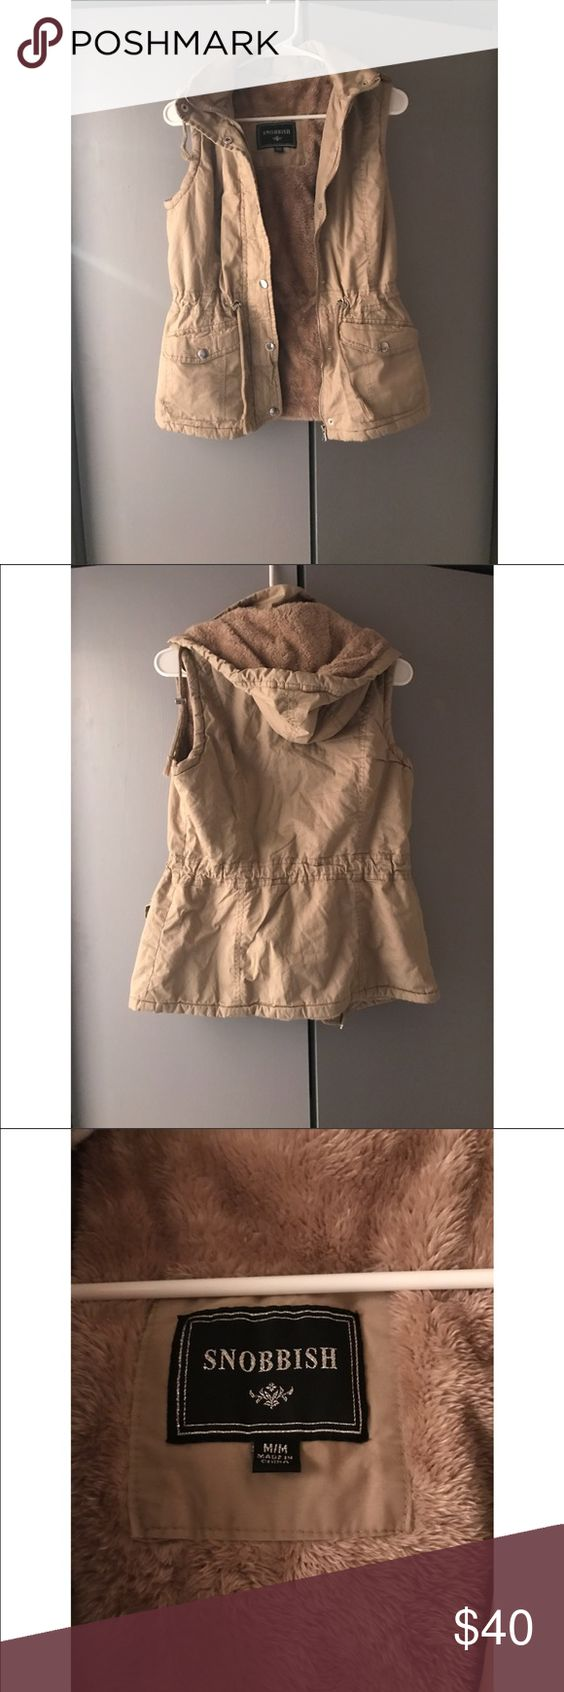 Snobbish tan vest.  Size medium Snobbish vest worn twice.  In great condition with fur on the inside.   Very warm and great for layering! Love just don't wear anymore.  Bought at a local boutique. Jackets & Coats Vests